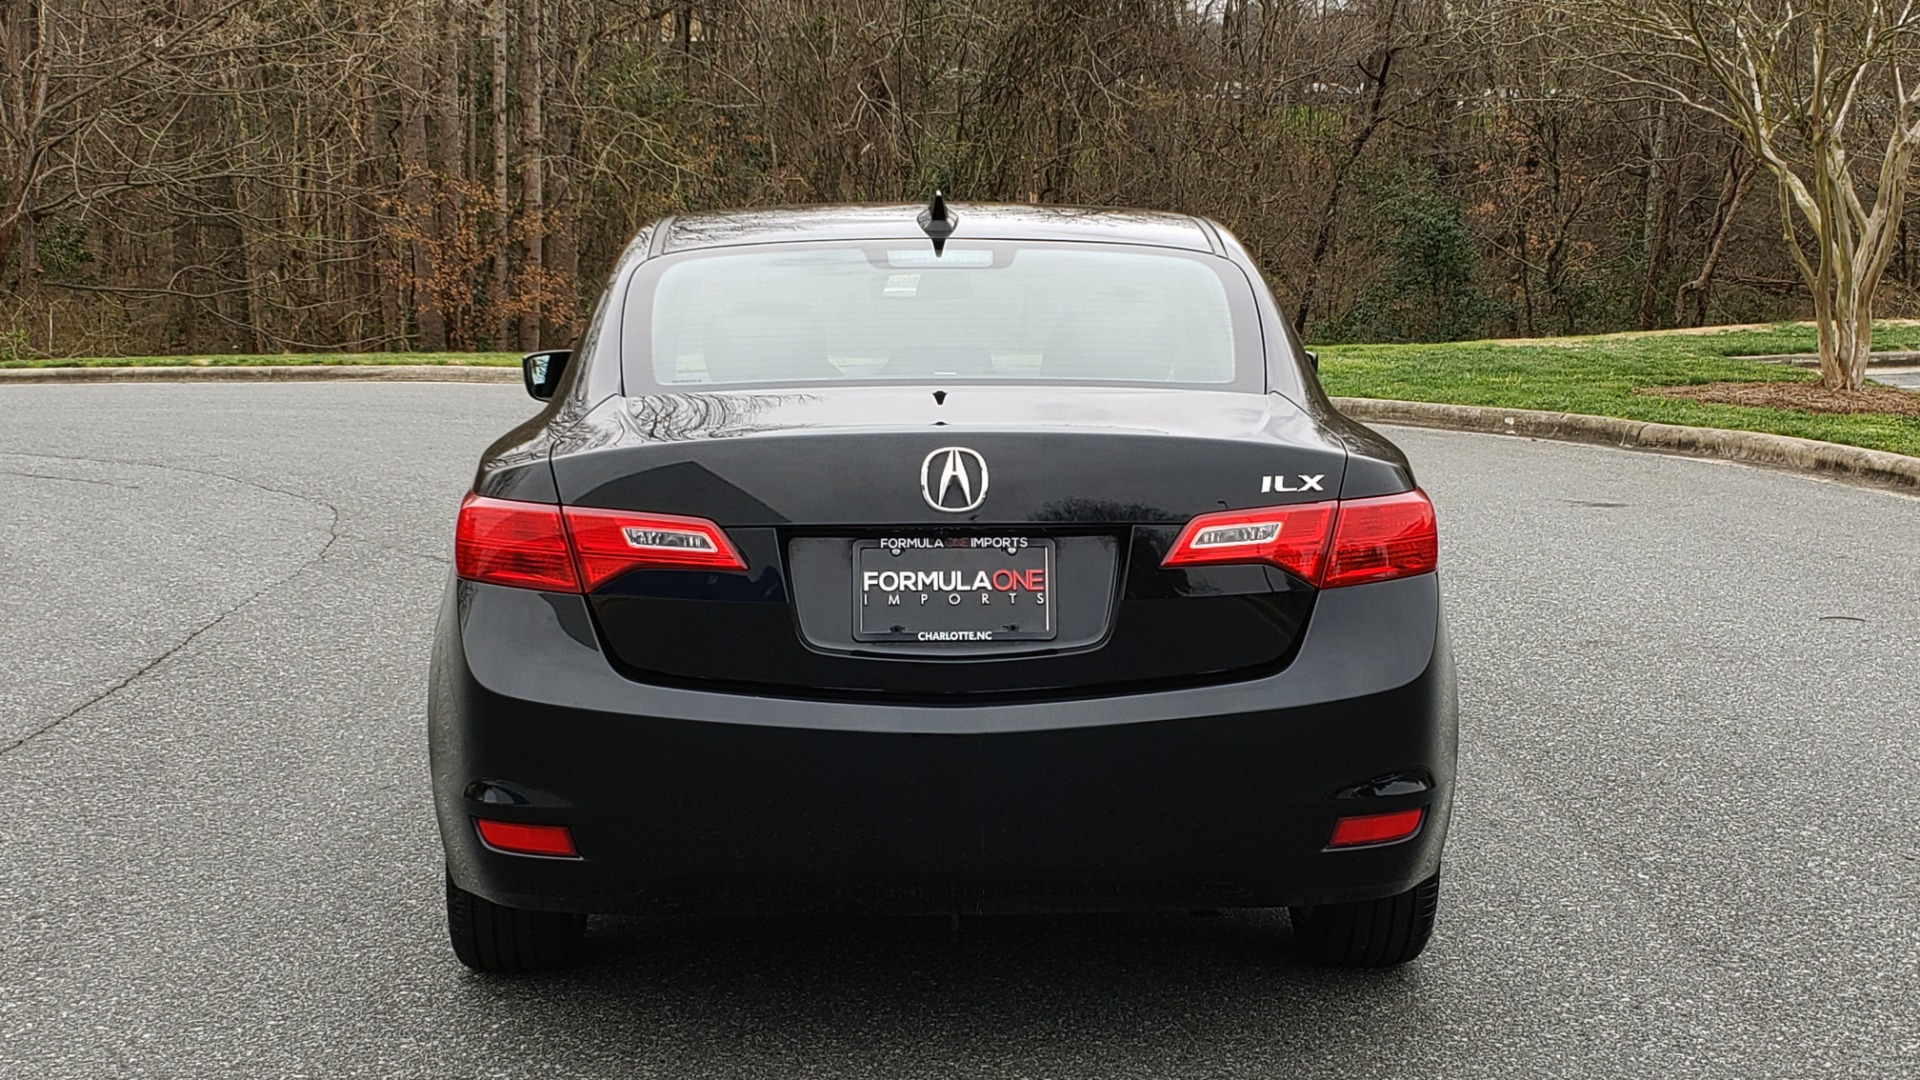 Used 2013 Acura ILX TECH PKG / SUNROOF / NAV / DUAL-ZONE A/C / REARVIEW for sale Sold at Formula Imports in Charlotte NC 28227 28